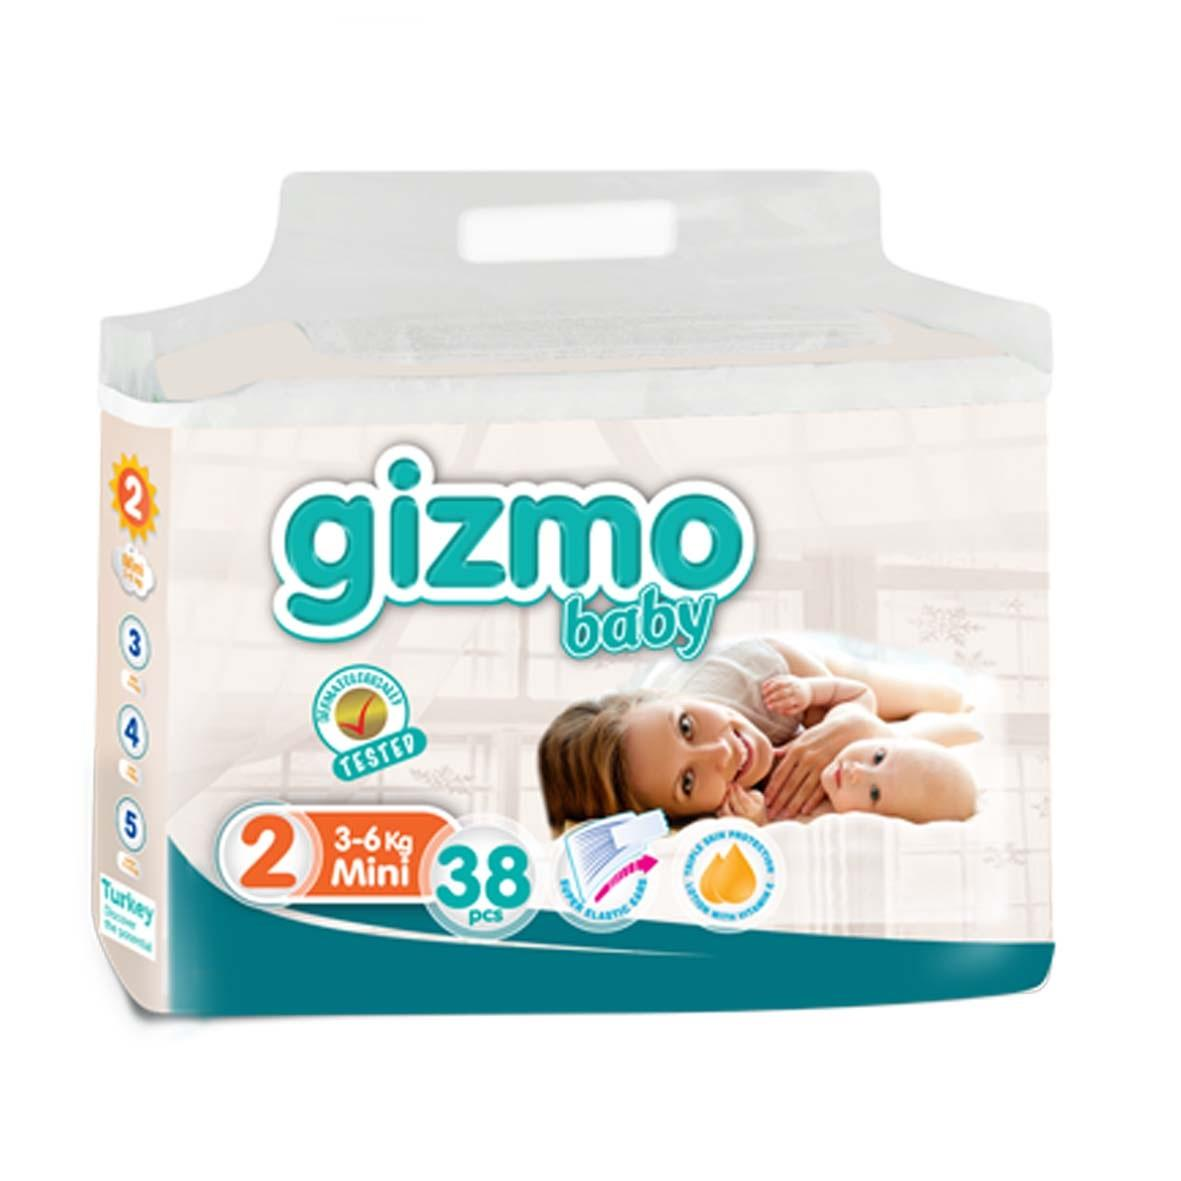 High Quality Disposable Baby Diaper from Turkey GIZMO baby diaper